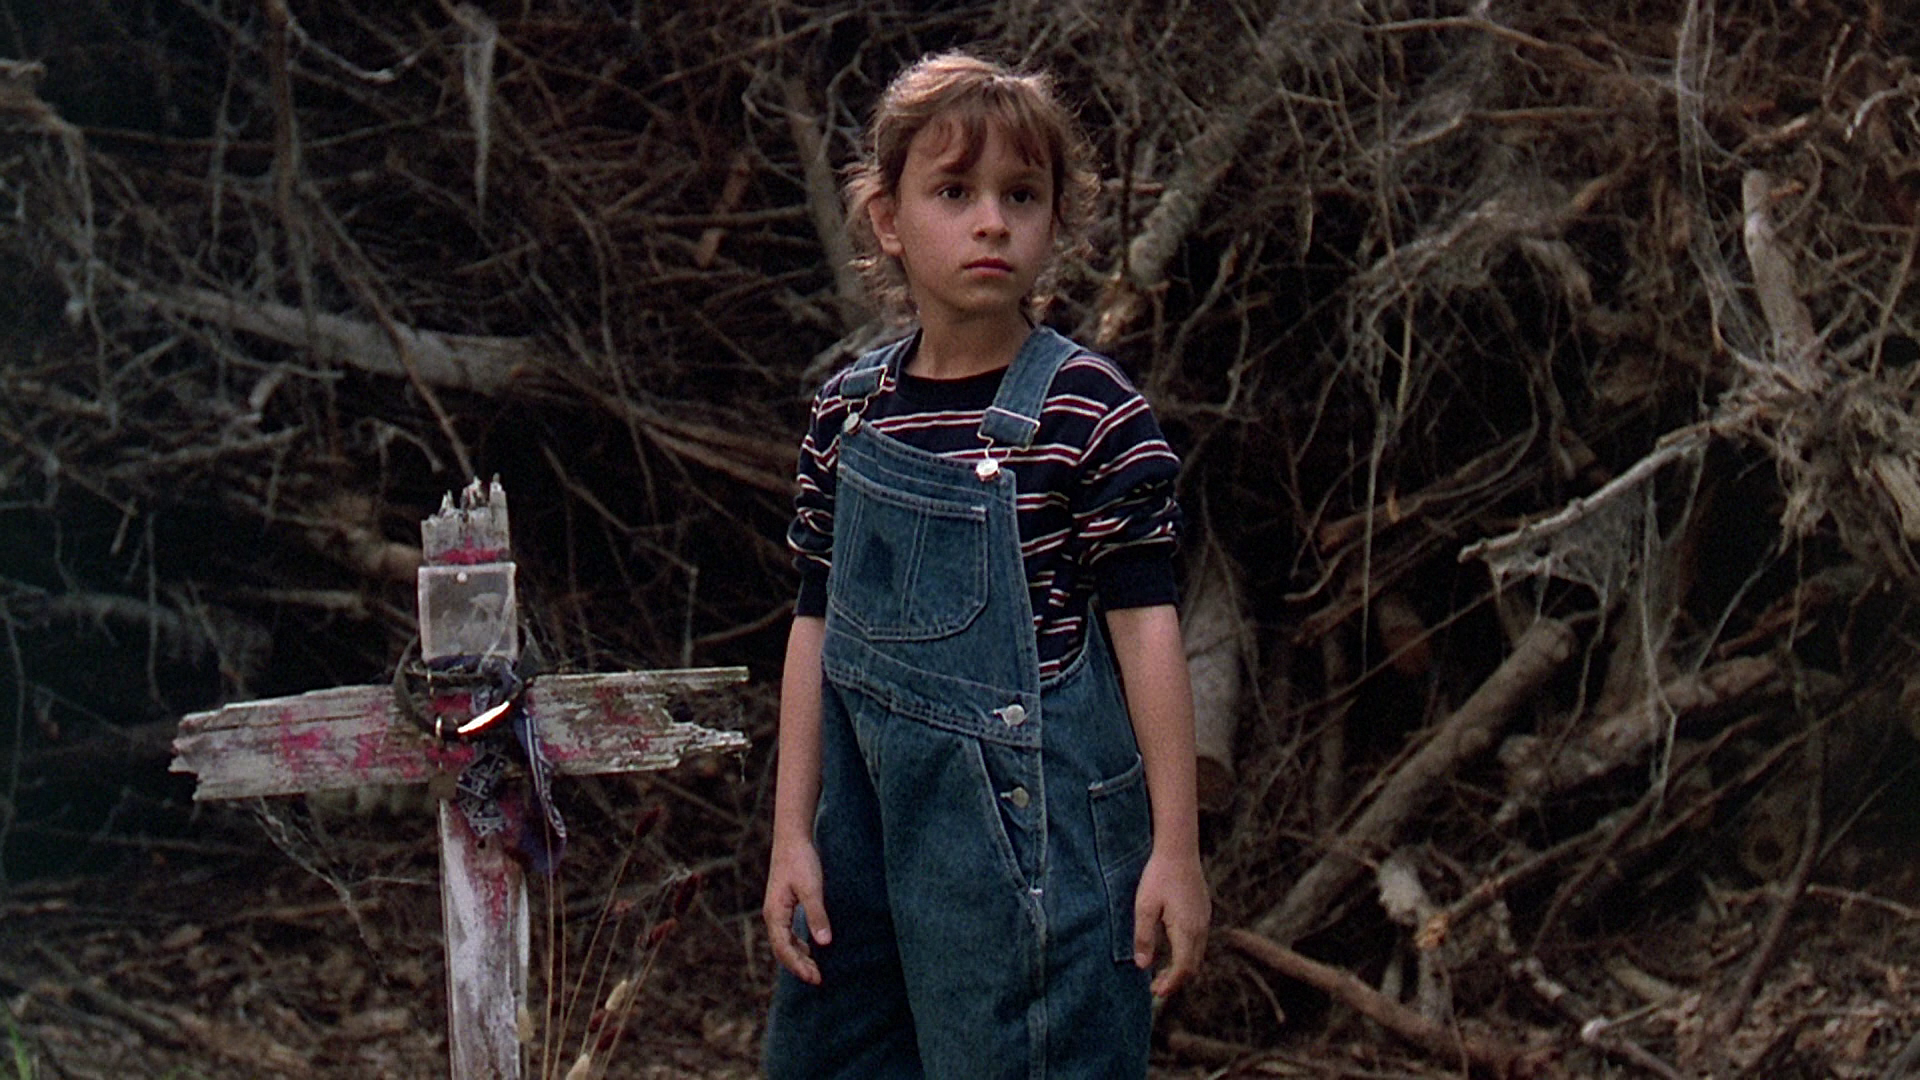 Ellie Creed Pet Sematary